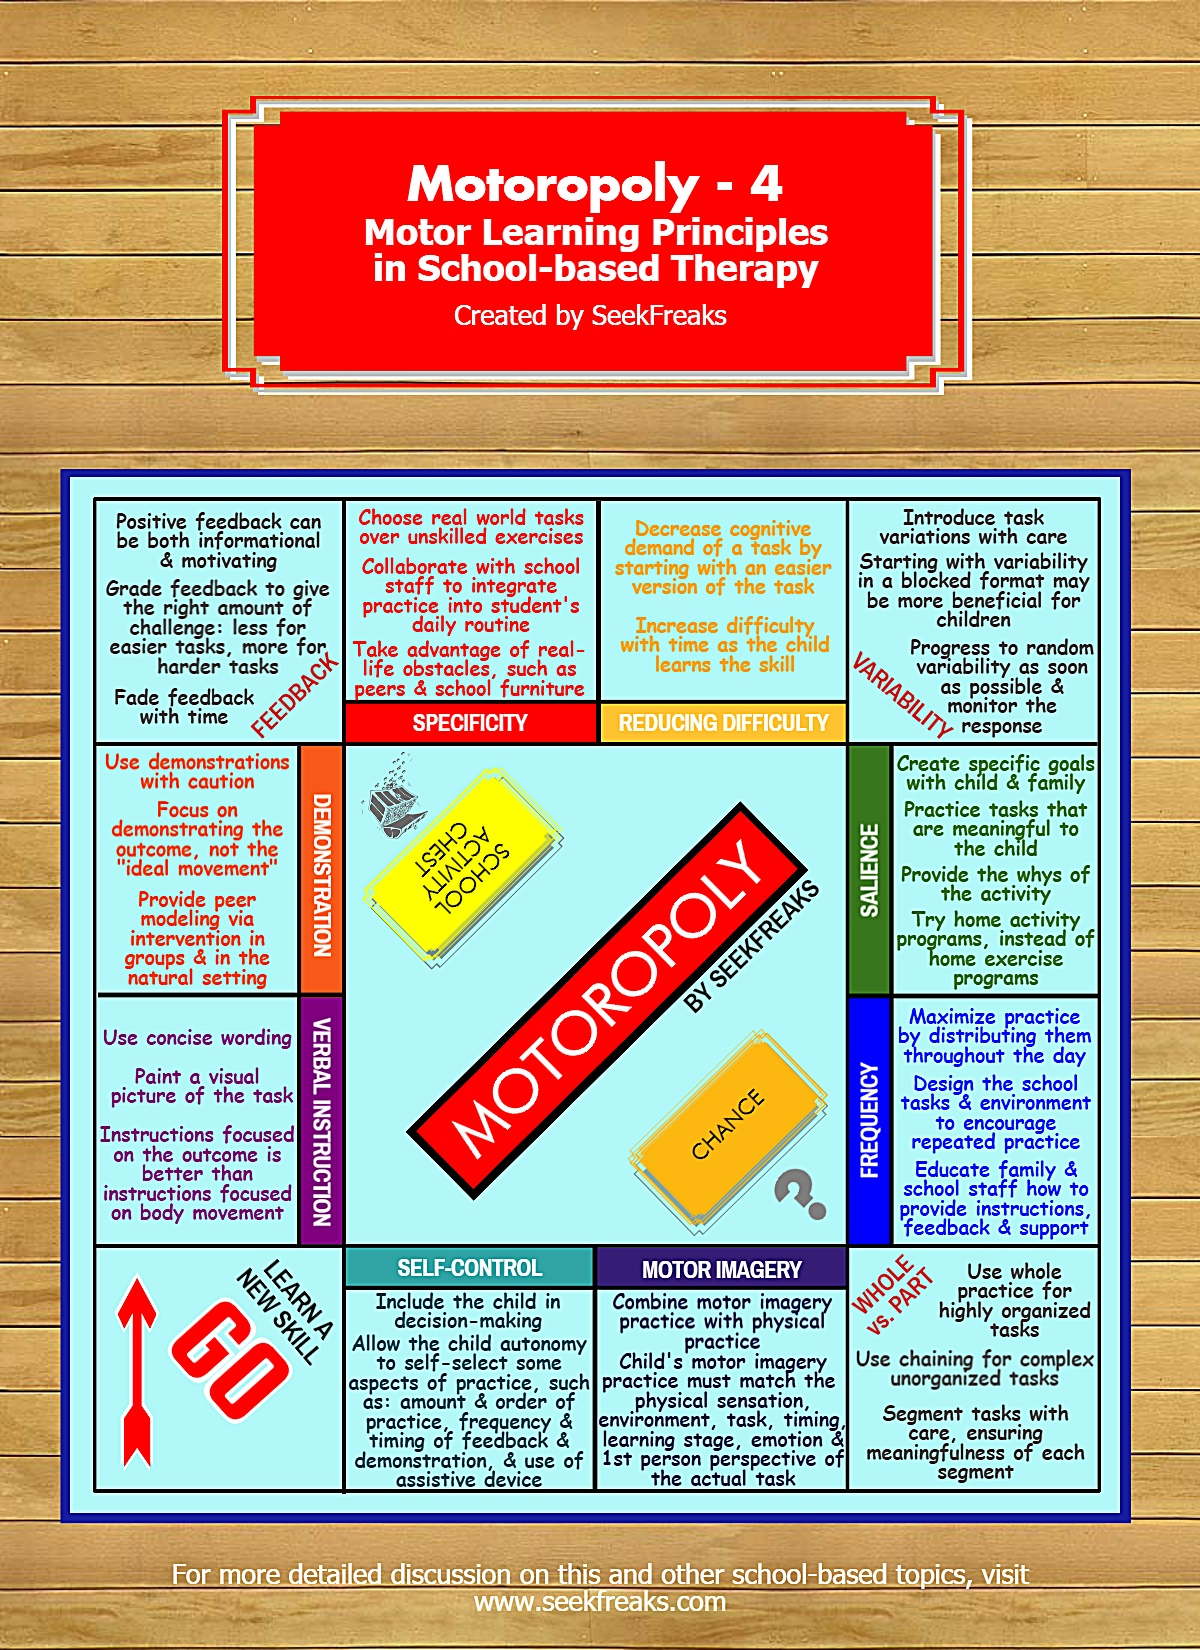 Motoropoly 4 - Motor Learning Principles in School-Based Therapy